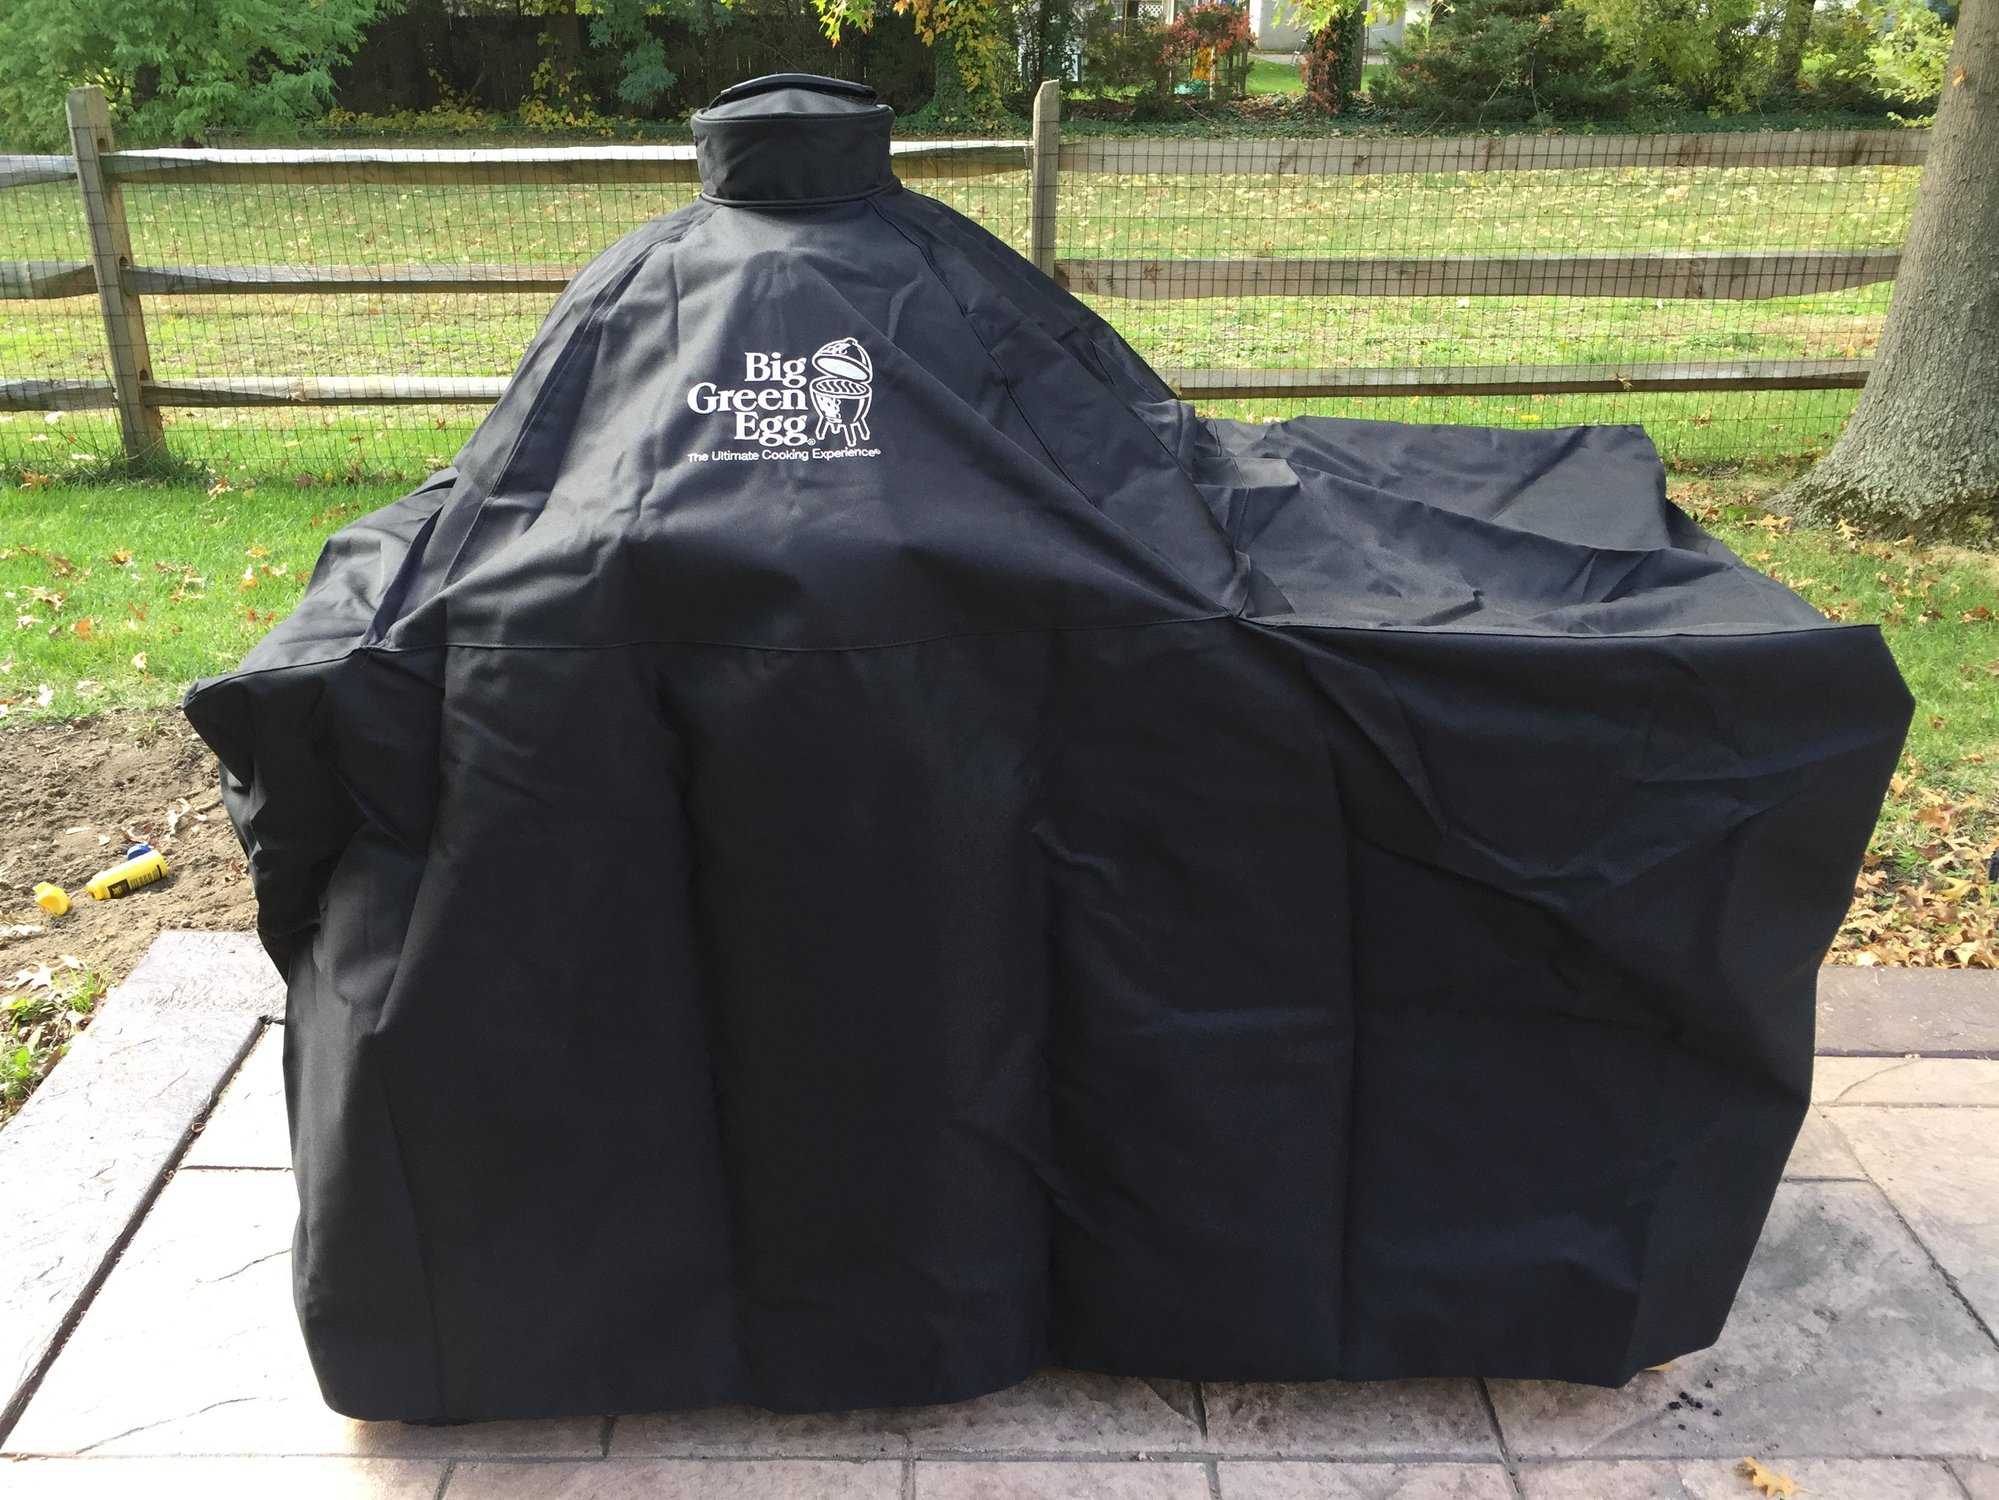 Beau Bought BGE Long Table Cover. Fits Pretty Well. Image.jpeg 2.6M